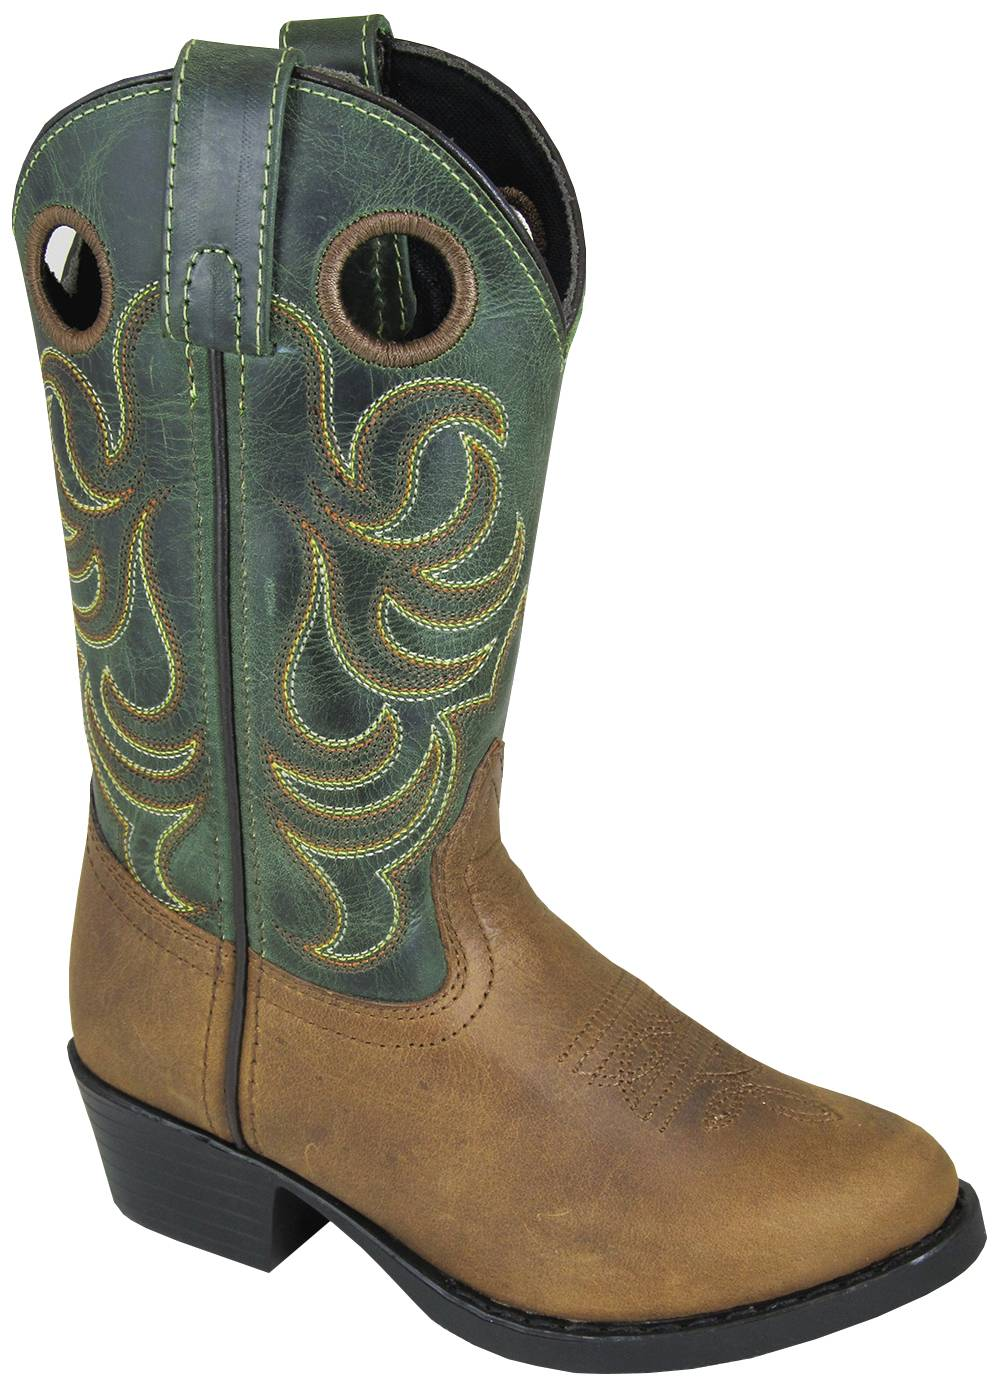 Smoky Mountain Youth Henry Boots - Youth - Brown